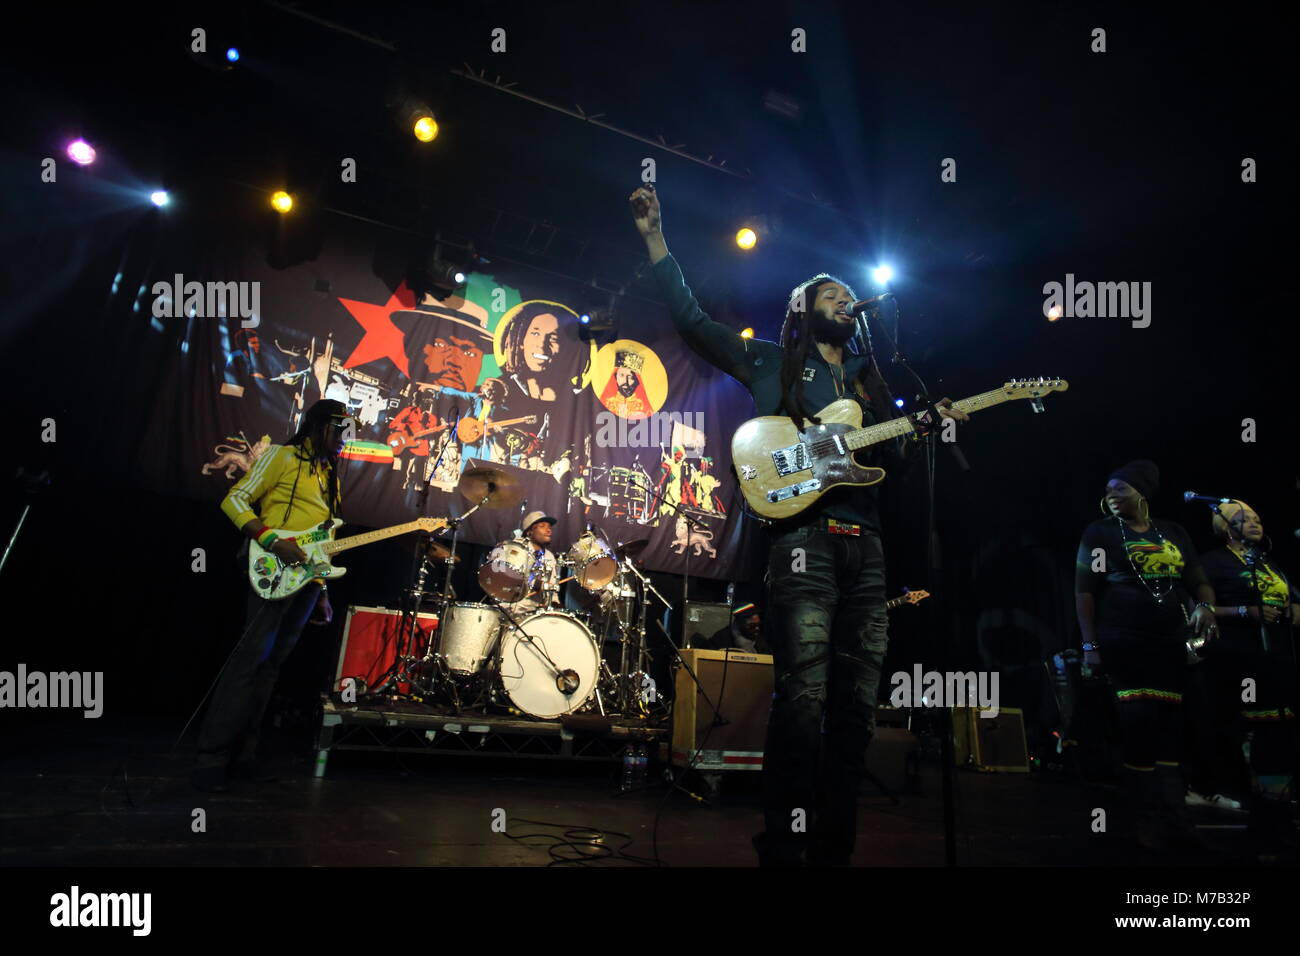 Manchester, UK. The Wailers perform live at Manchester Academy. Credit: Simon Newbury/Alamy Live News - Stock Image